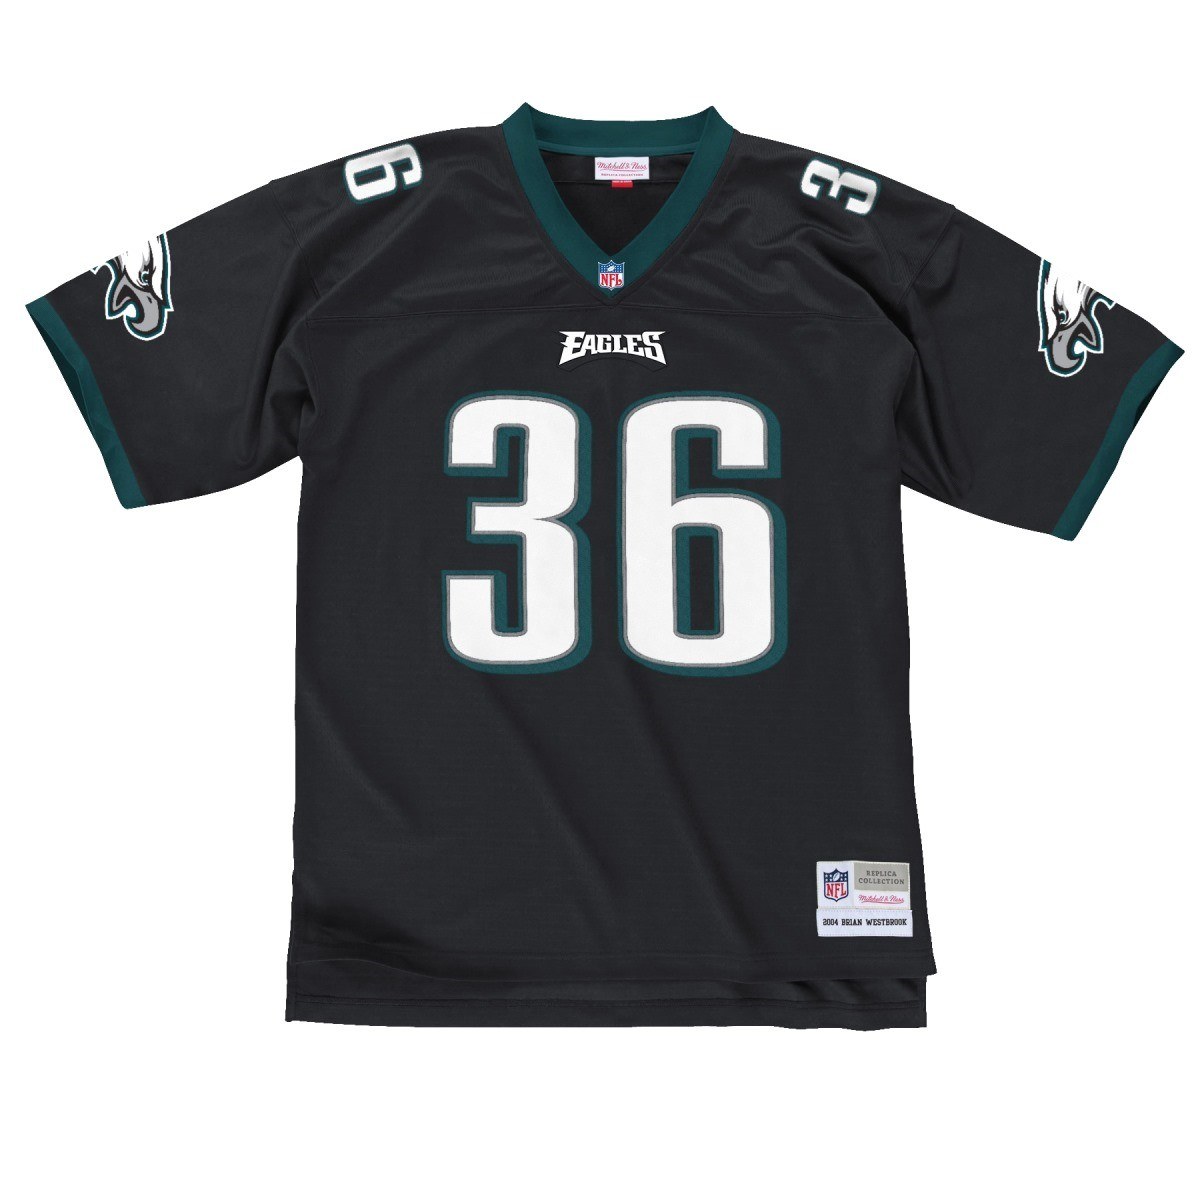 88cd1c59a3b Details about Brian Westbrook Philadelphia Eagles Men's NFL Mitchell & Ness  Black Jersey